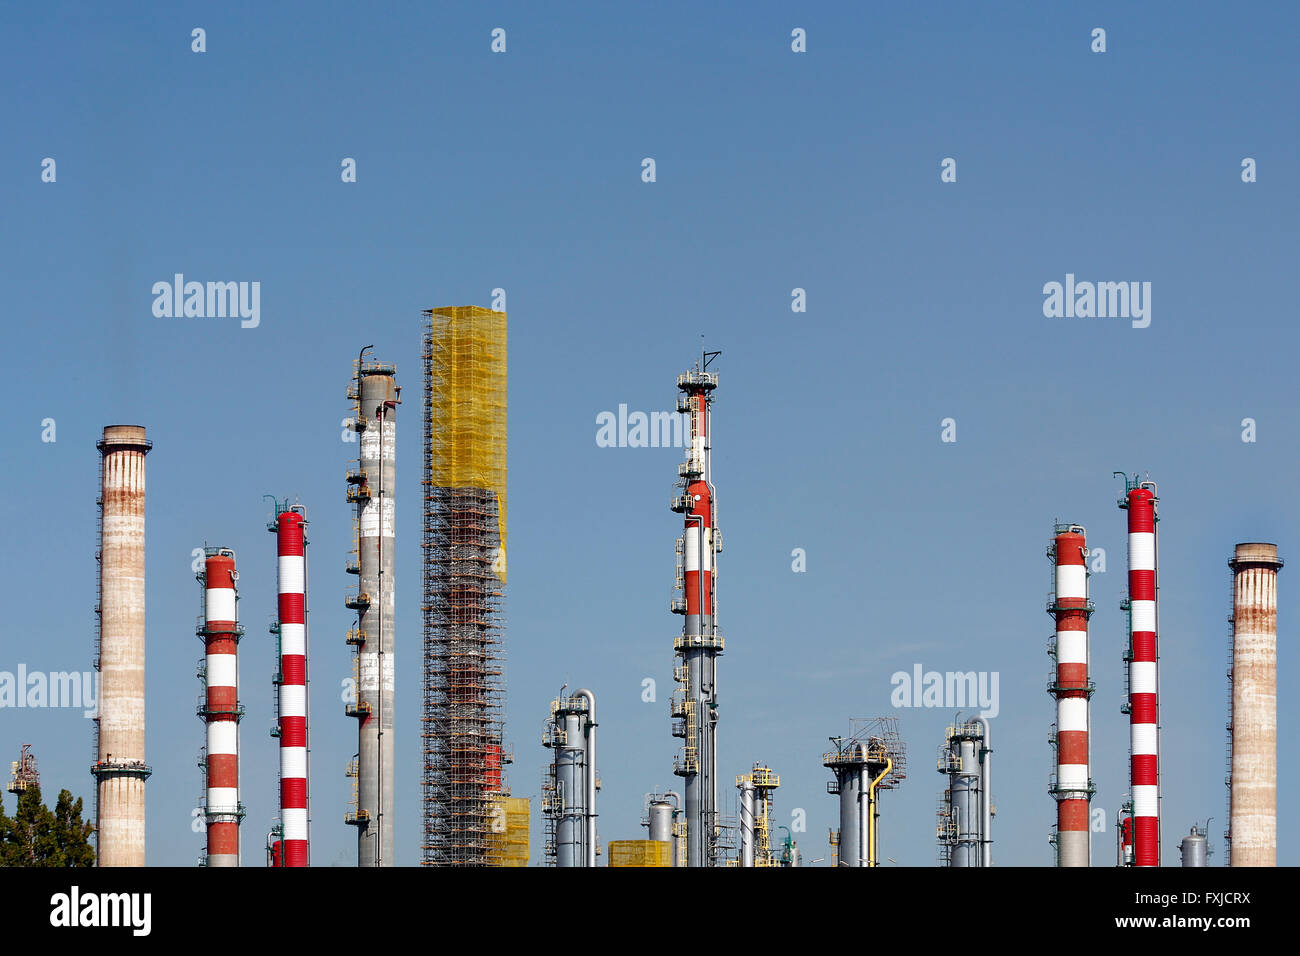 Chimneys in a large oil refinery - Stock Image